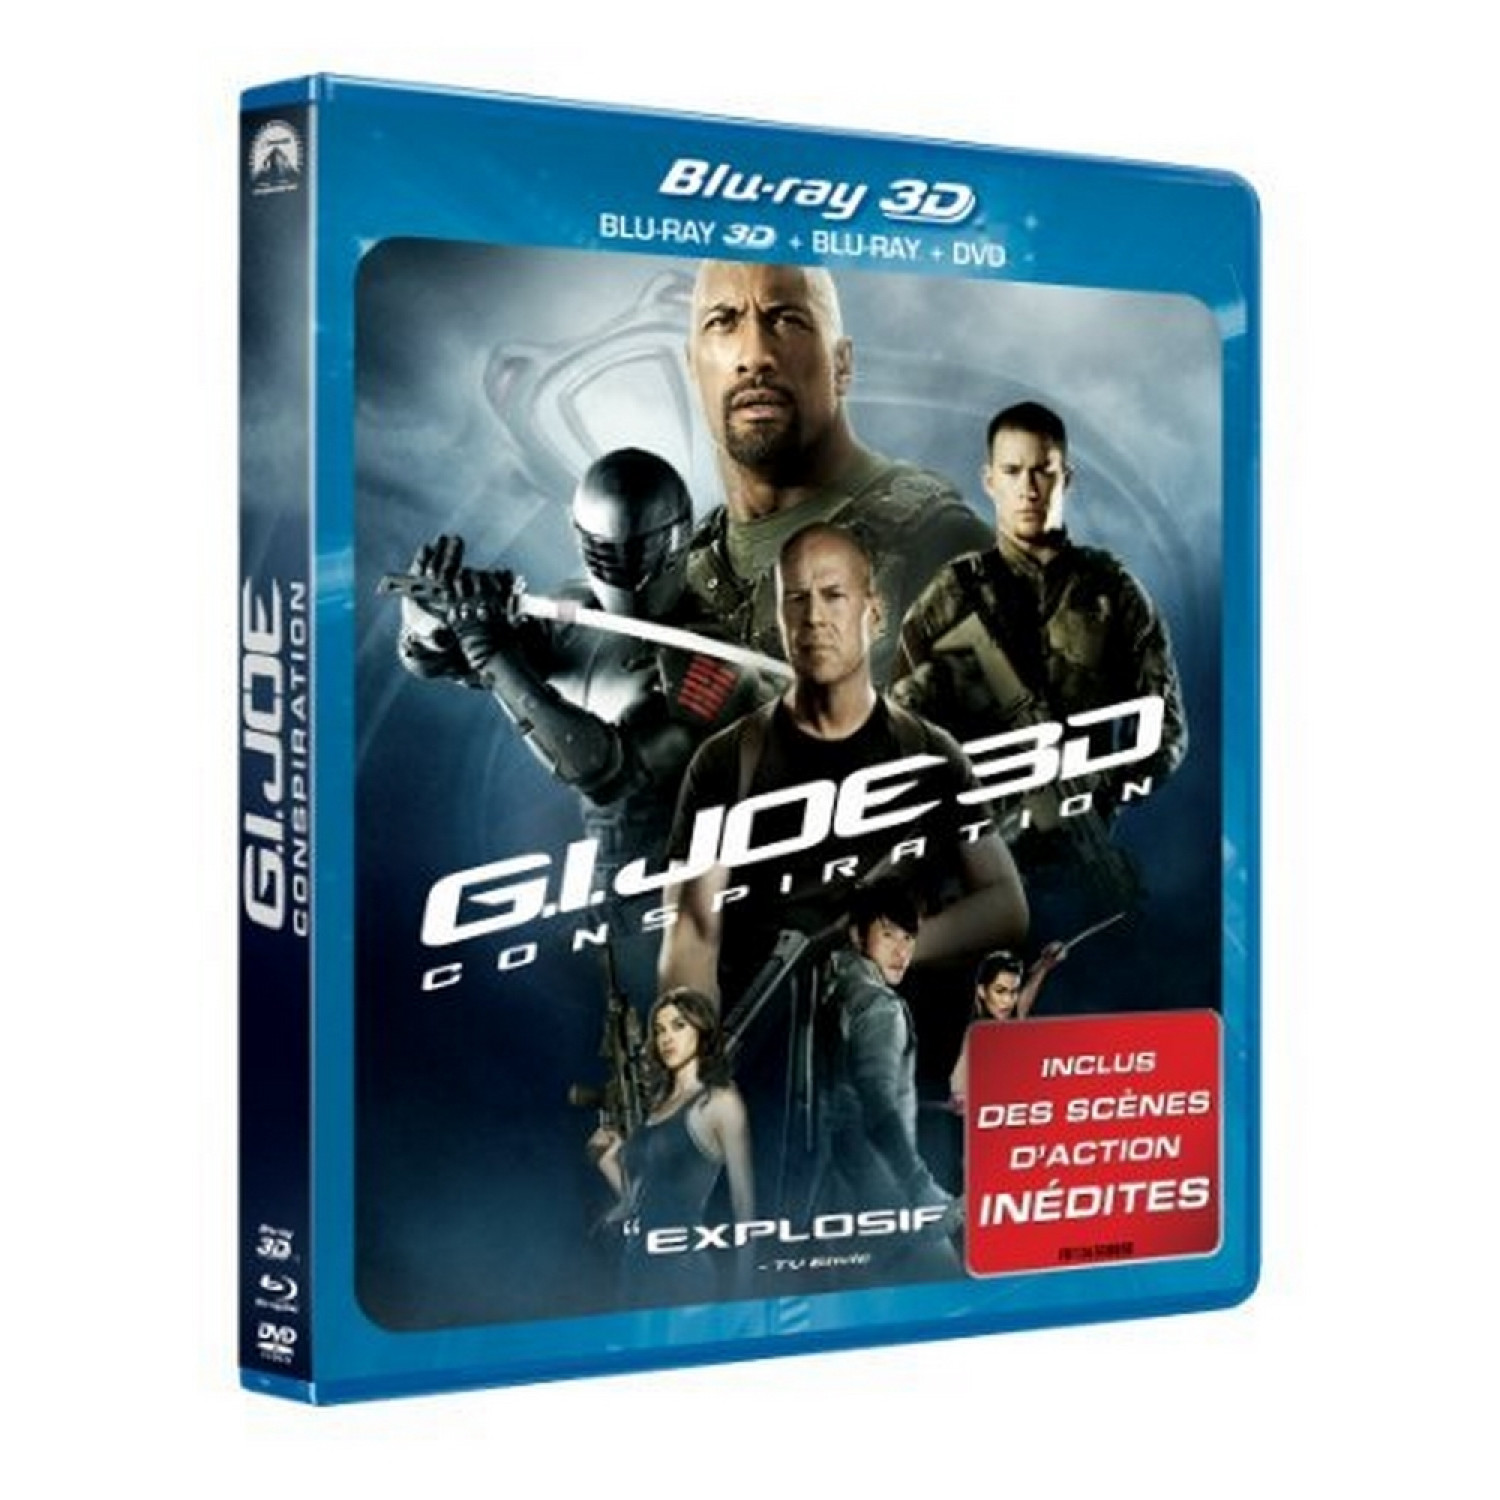 G.i. Joe 2   Conspiration [blu-ray] [blu-ray 3d]